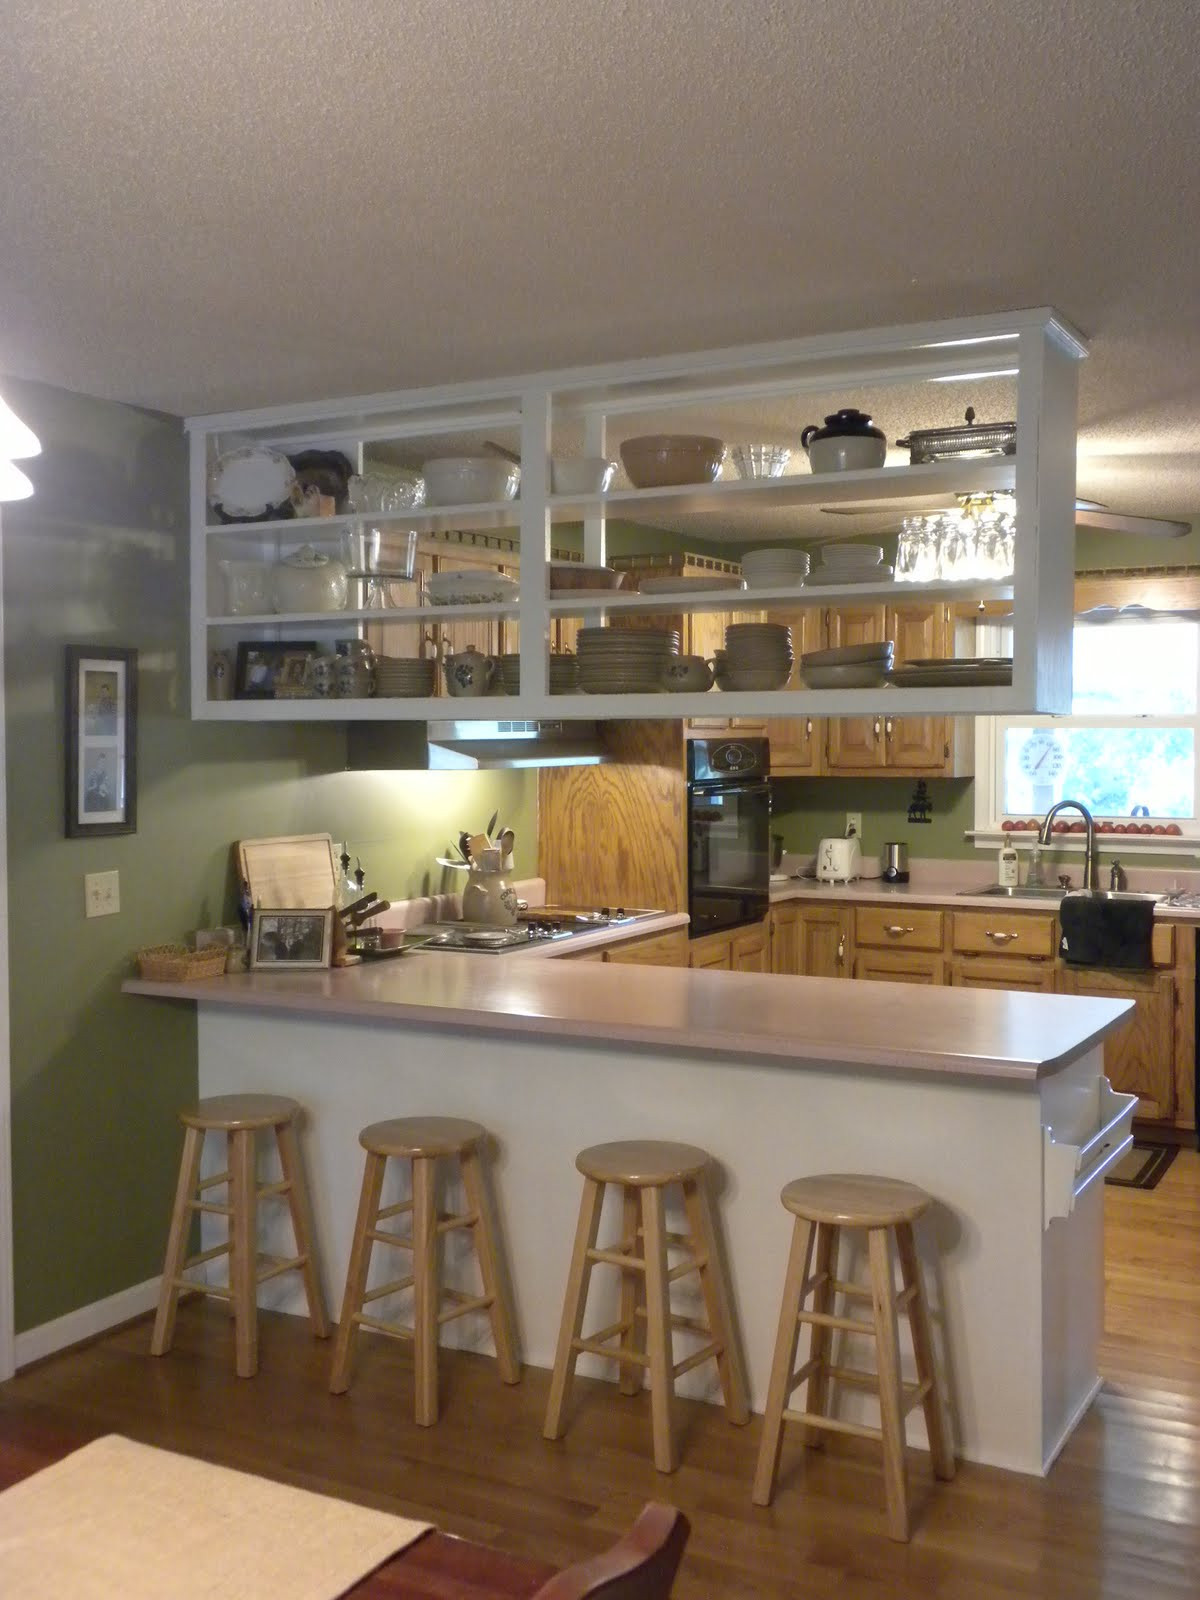 Best ideas about Upper Kitchen Cabinets . Save or Pin A Meek Perspective Before & After Upper Kitchen Cabinet Now.